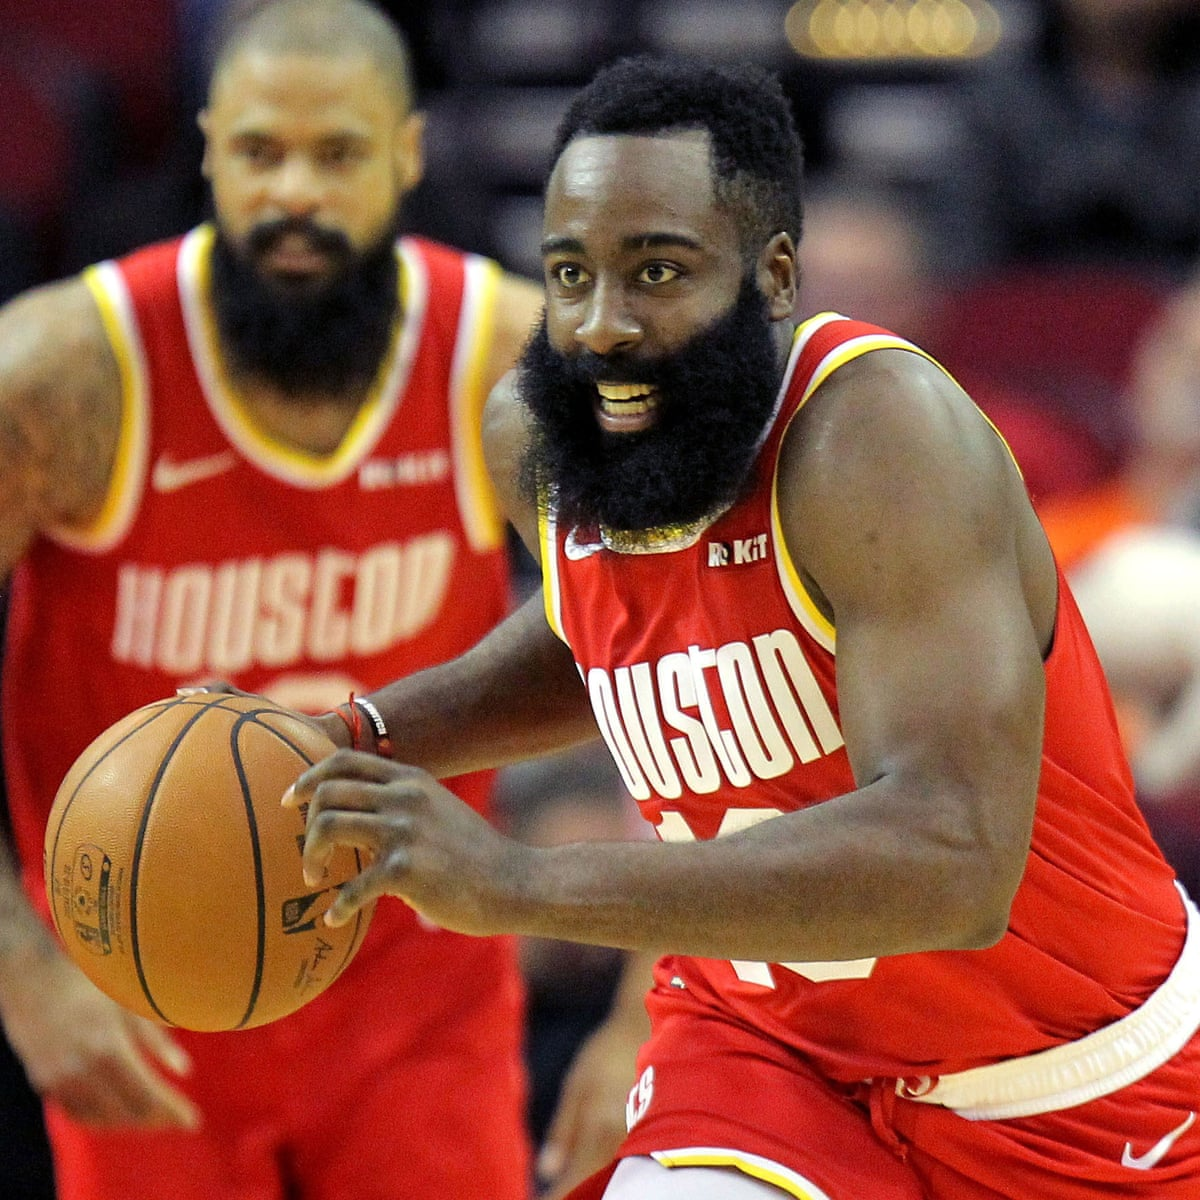 Ruthless But Unloved Is James Harden The Nba S Cristiano Ronaldo Sport The Guardian